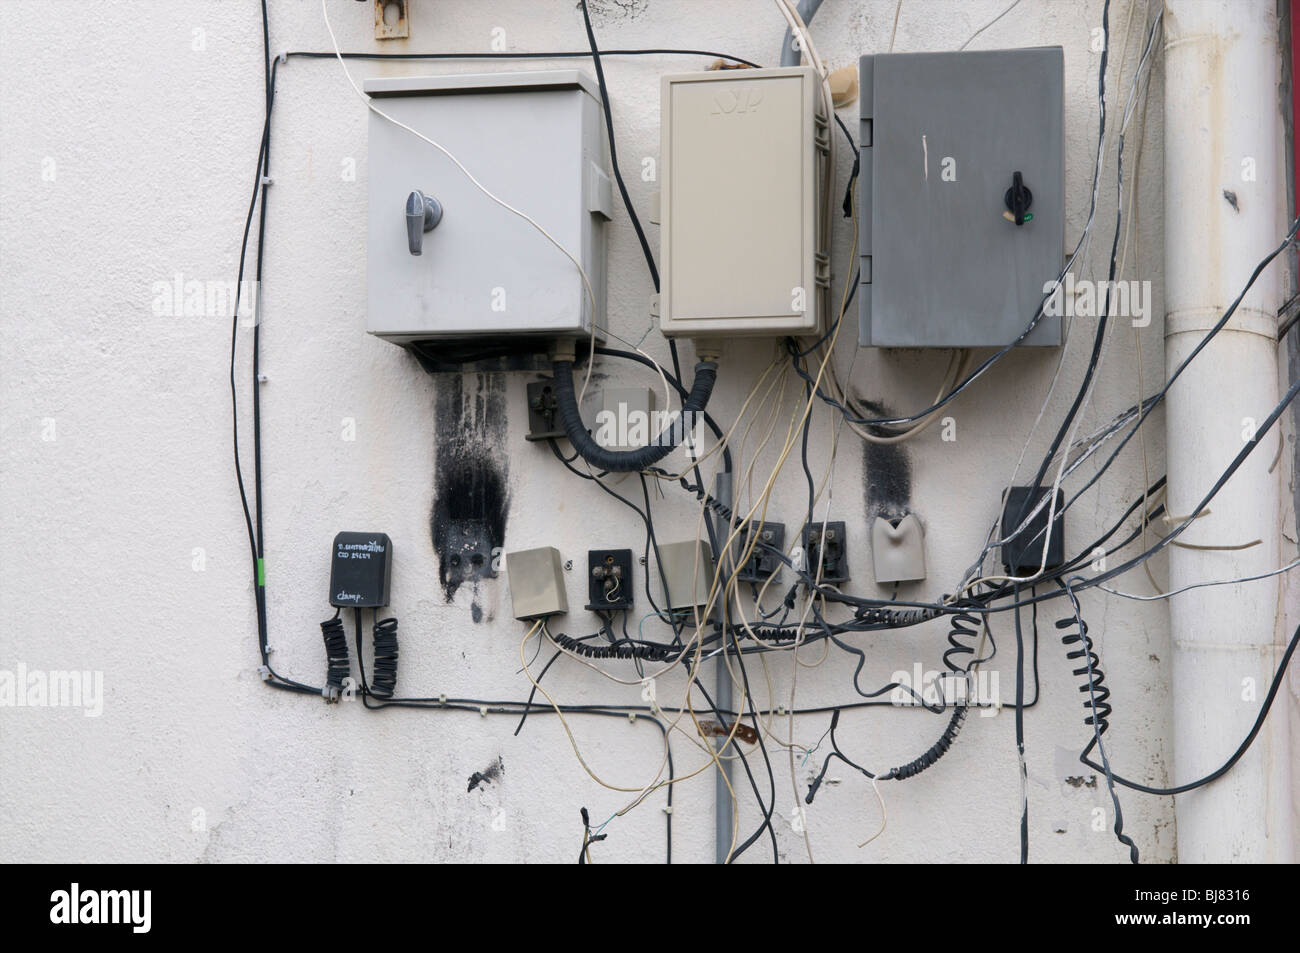 Bad Electrical Wiring Stock Photo  Royalty Free Image  28452178